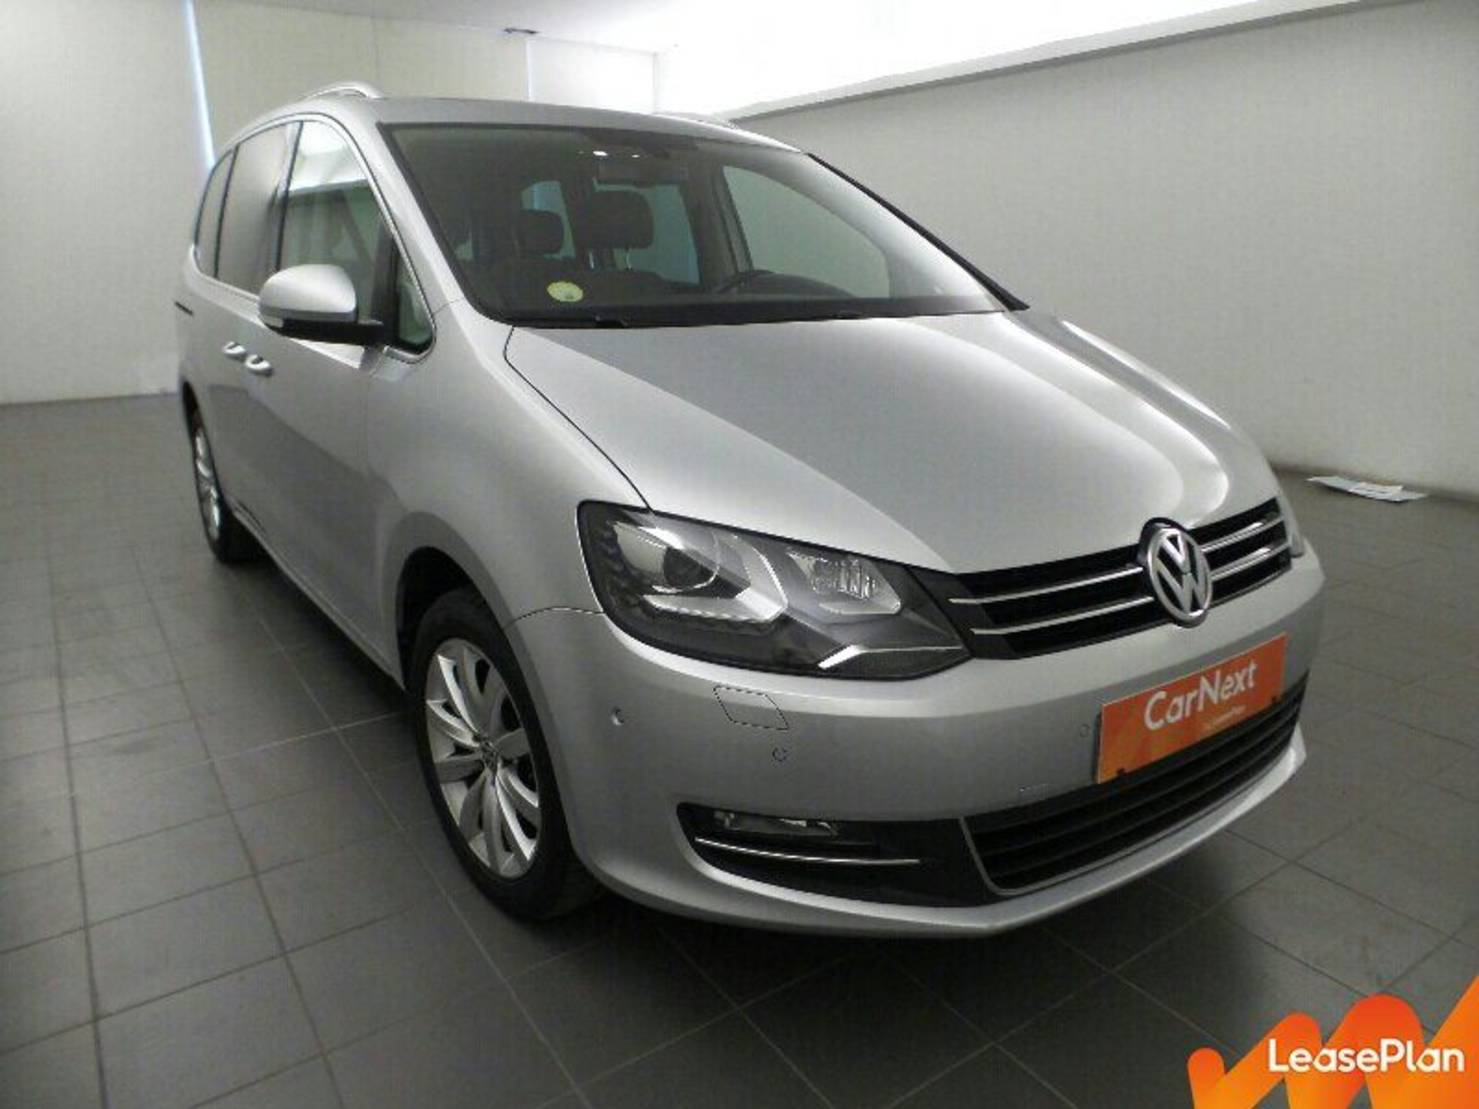 Volkswagen Sharan 2.0 TDI 140 FAP BlueMotion Technology, Carat DSG6 detail2